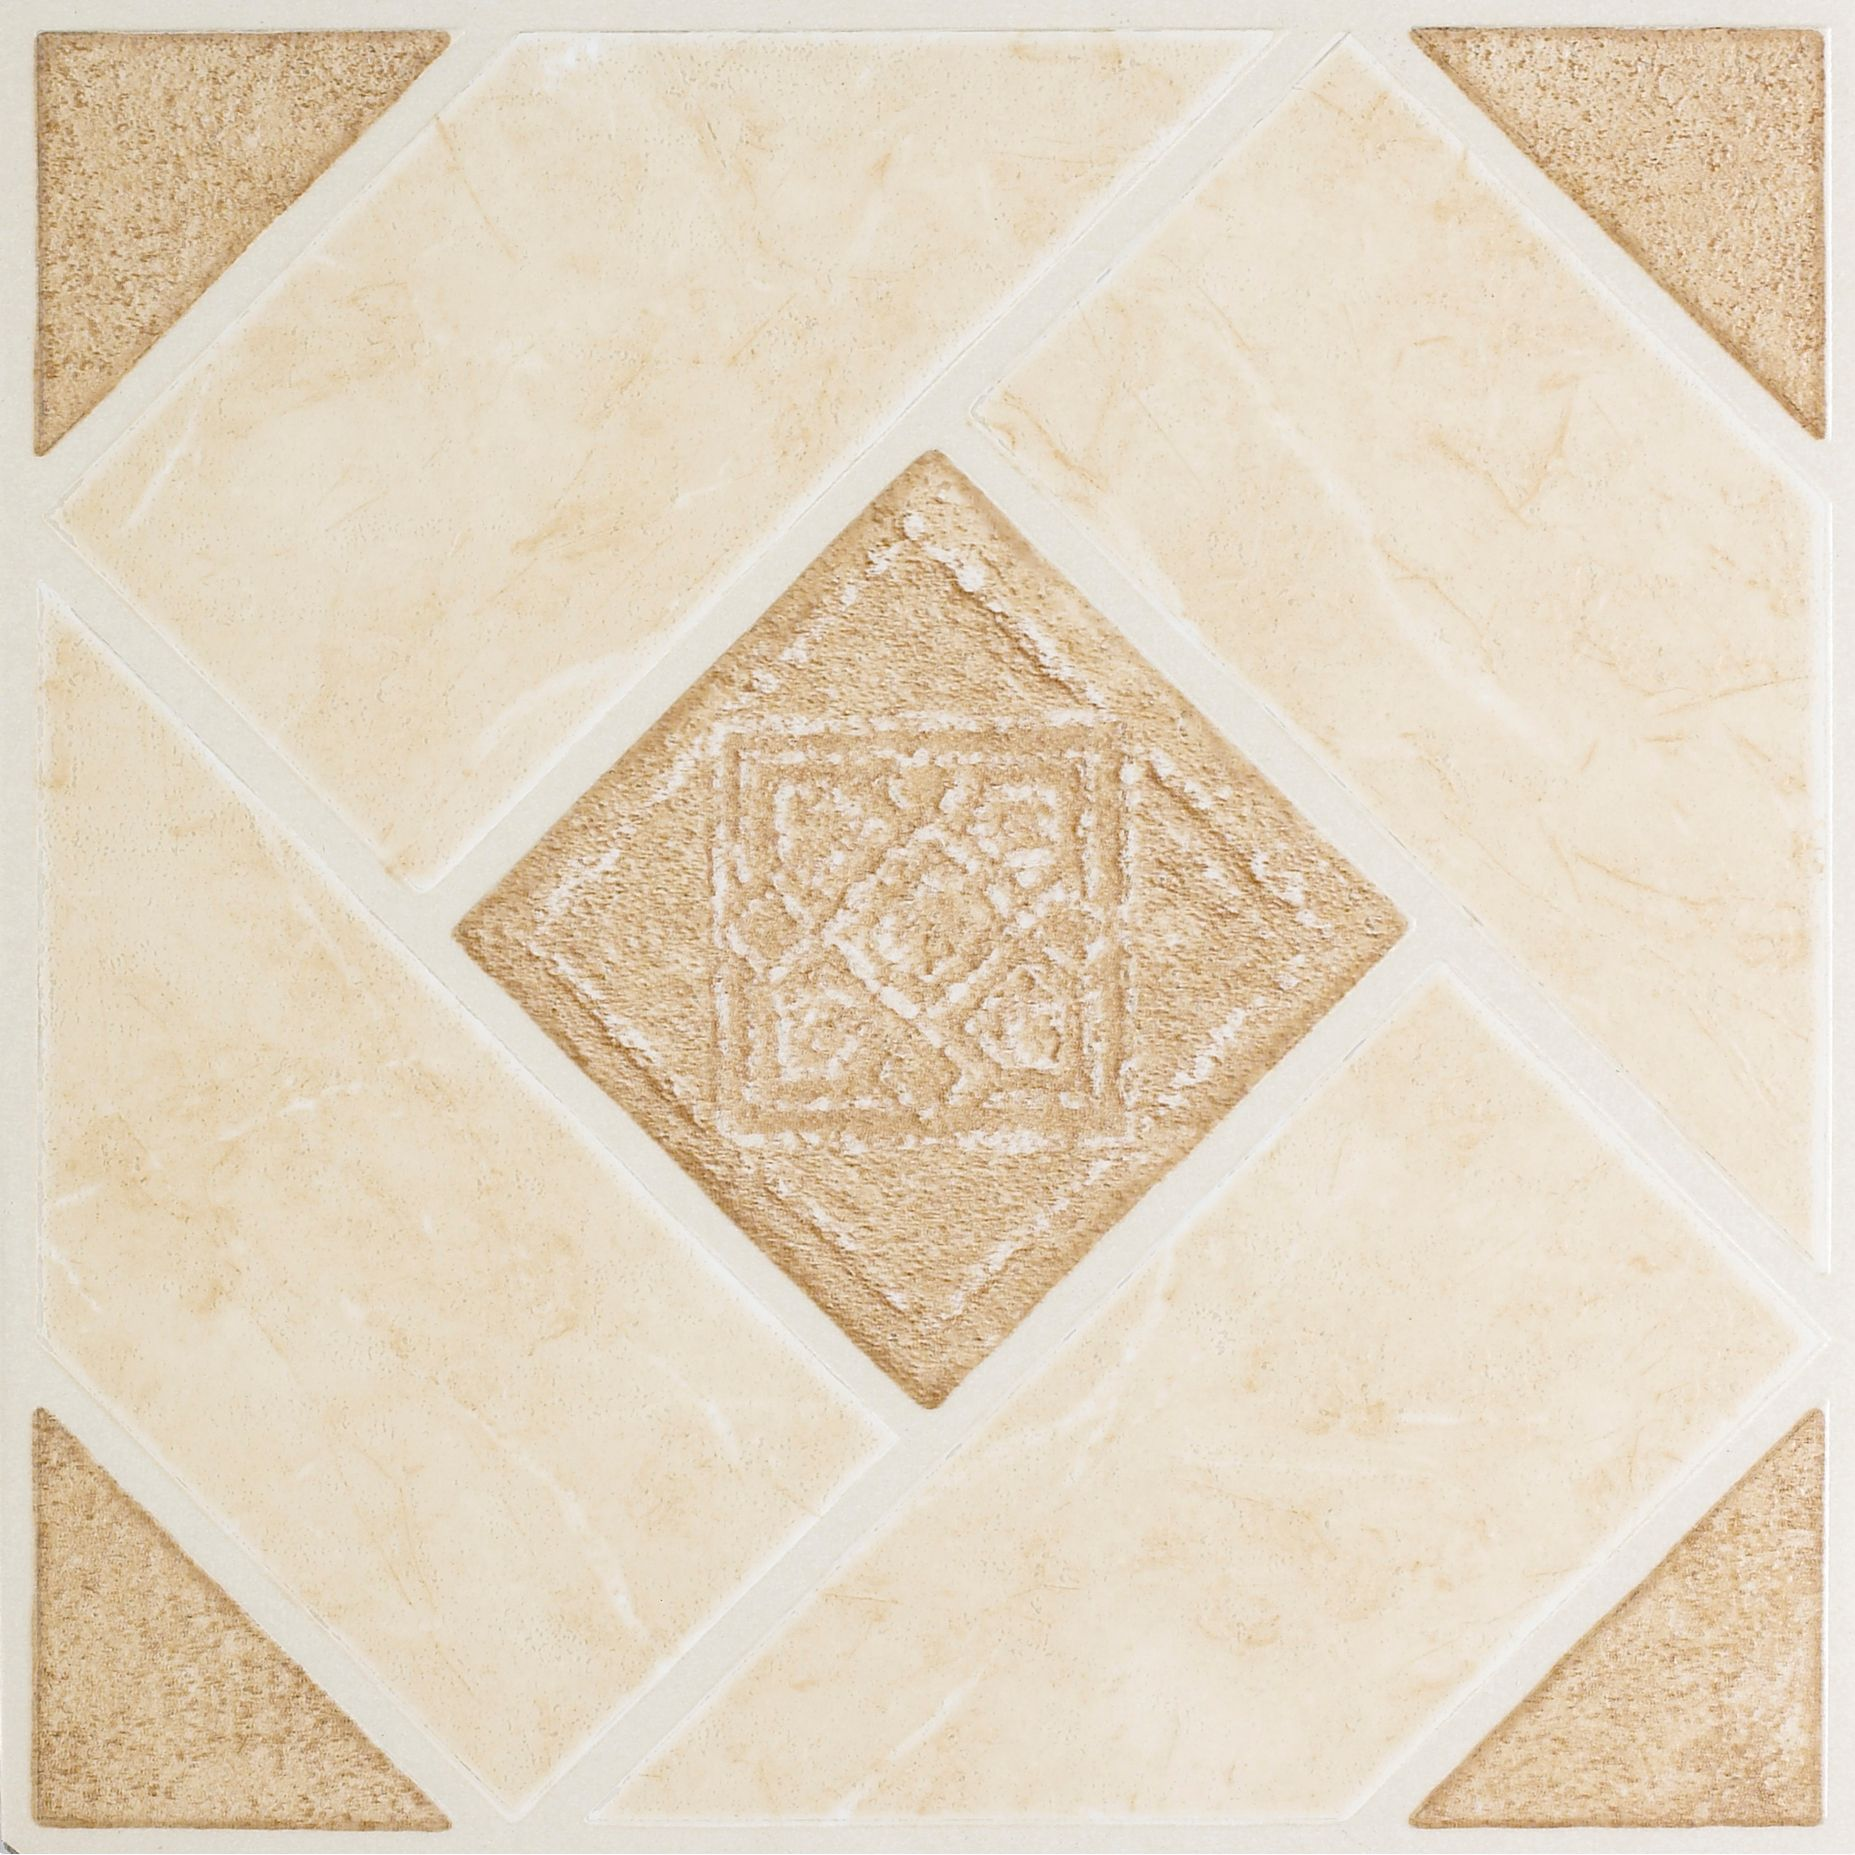 B and q floor tile adhesive choice image tile flooring design ideas beautiful b and q self adhesive floor tiles gallery flooring colours jacona beige stone effect self dailygadgetfo Image collections